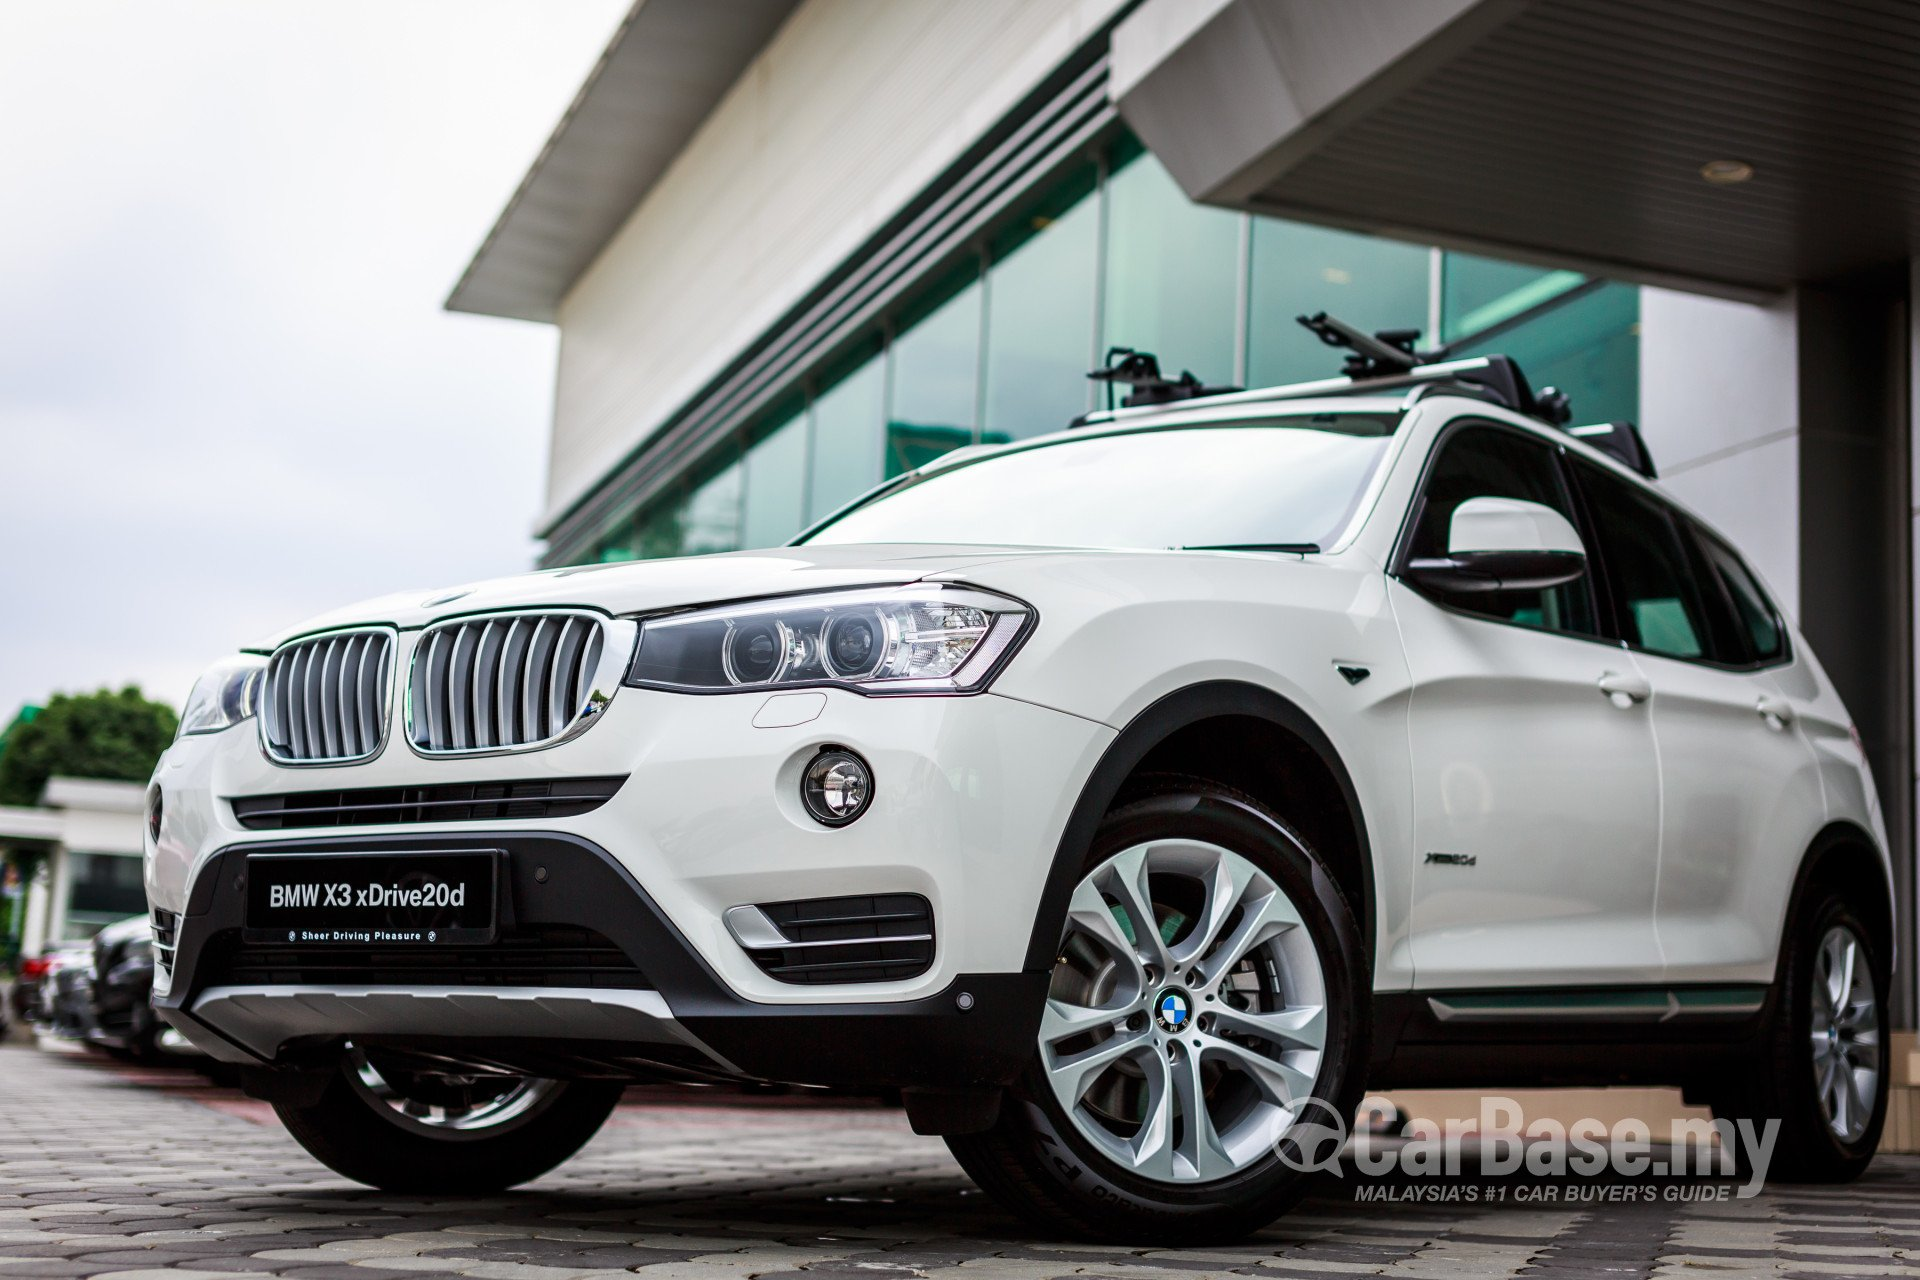 Bmw X3 F25 Lci 2014 Exterior Image 14789 In Malaysia Reviews Specs Prices